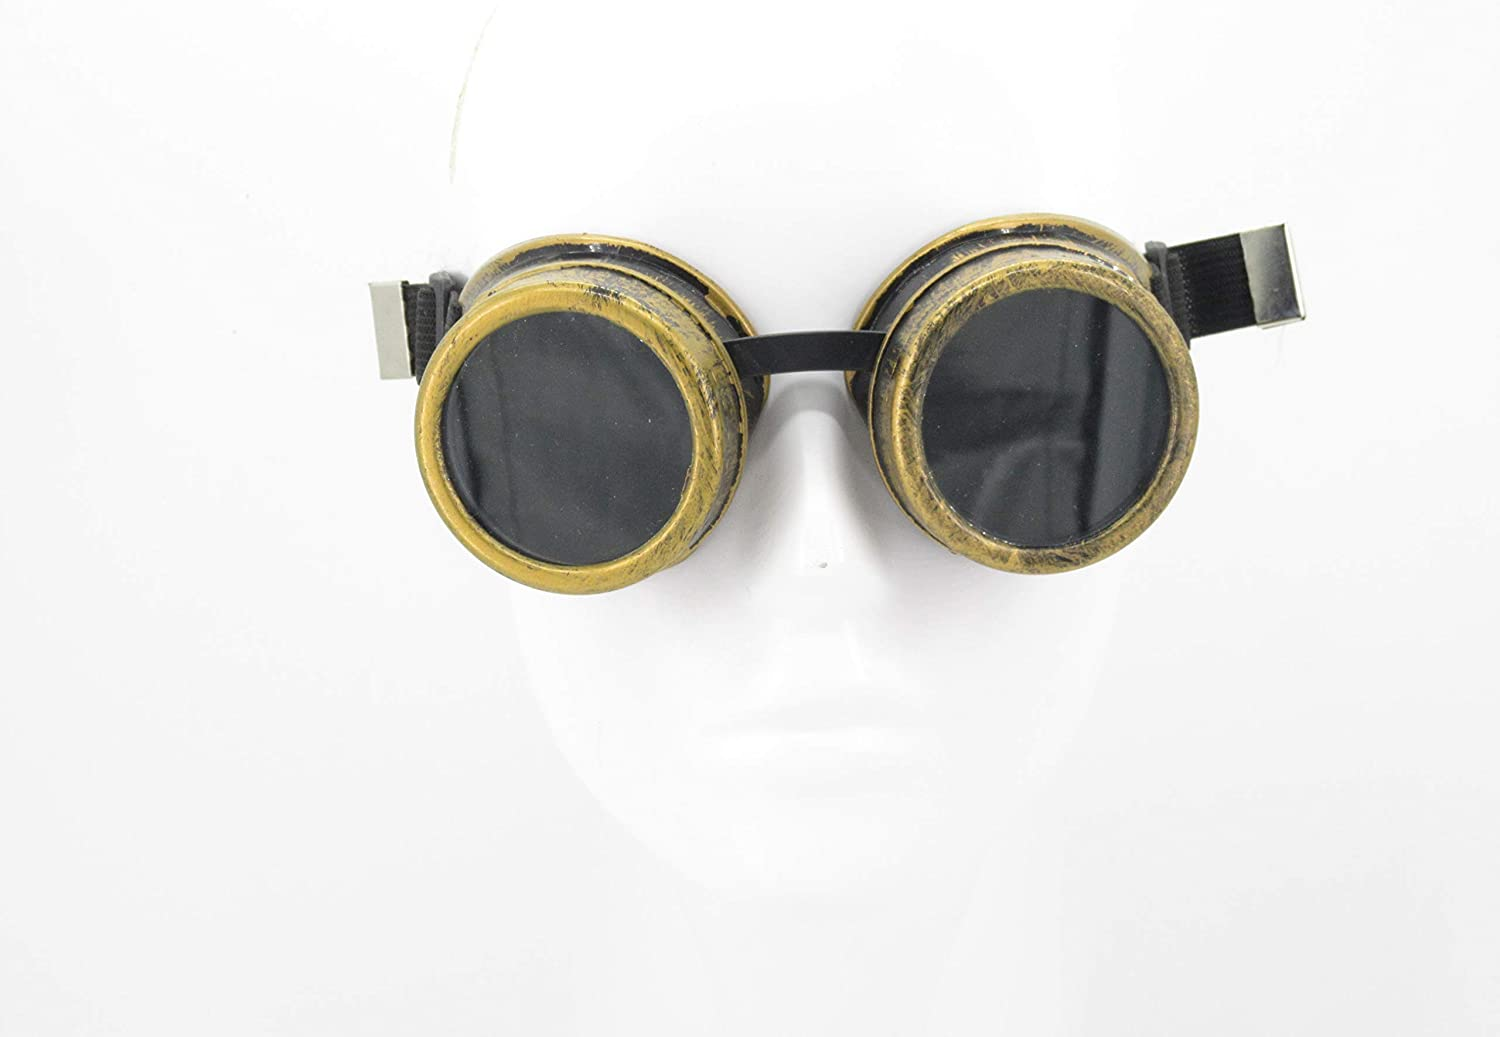 Yarizm Steampunk Goggles Rustic Copper Vintage Goggle Cyber Welding Goth Cosplay Glasses Old Copper